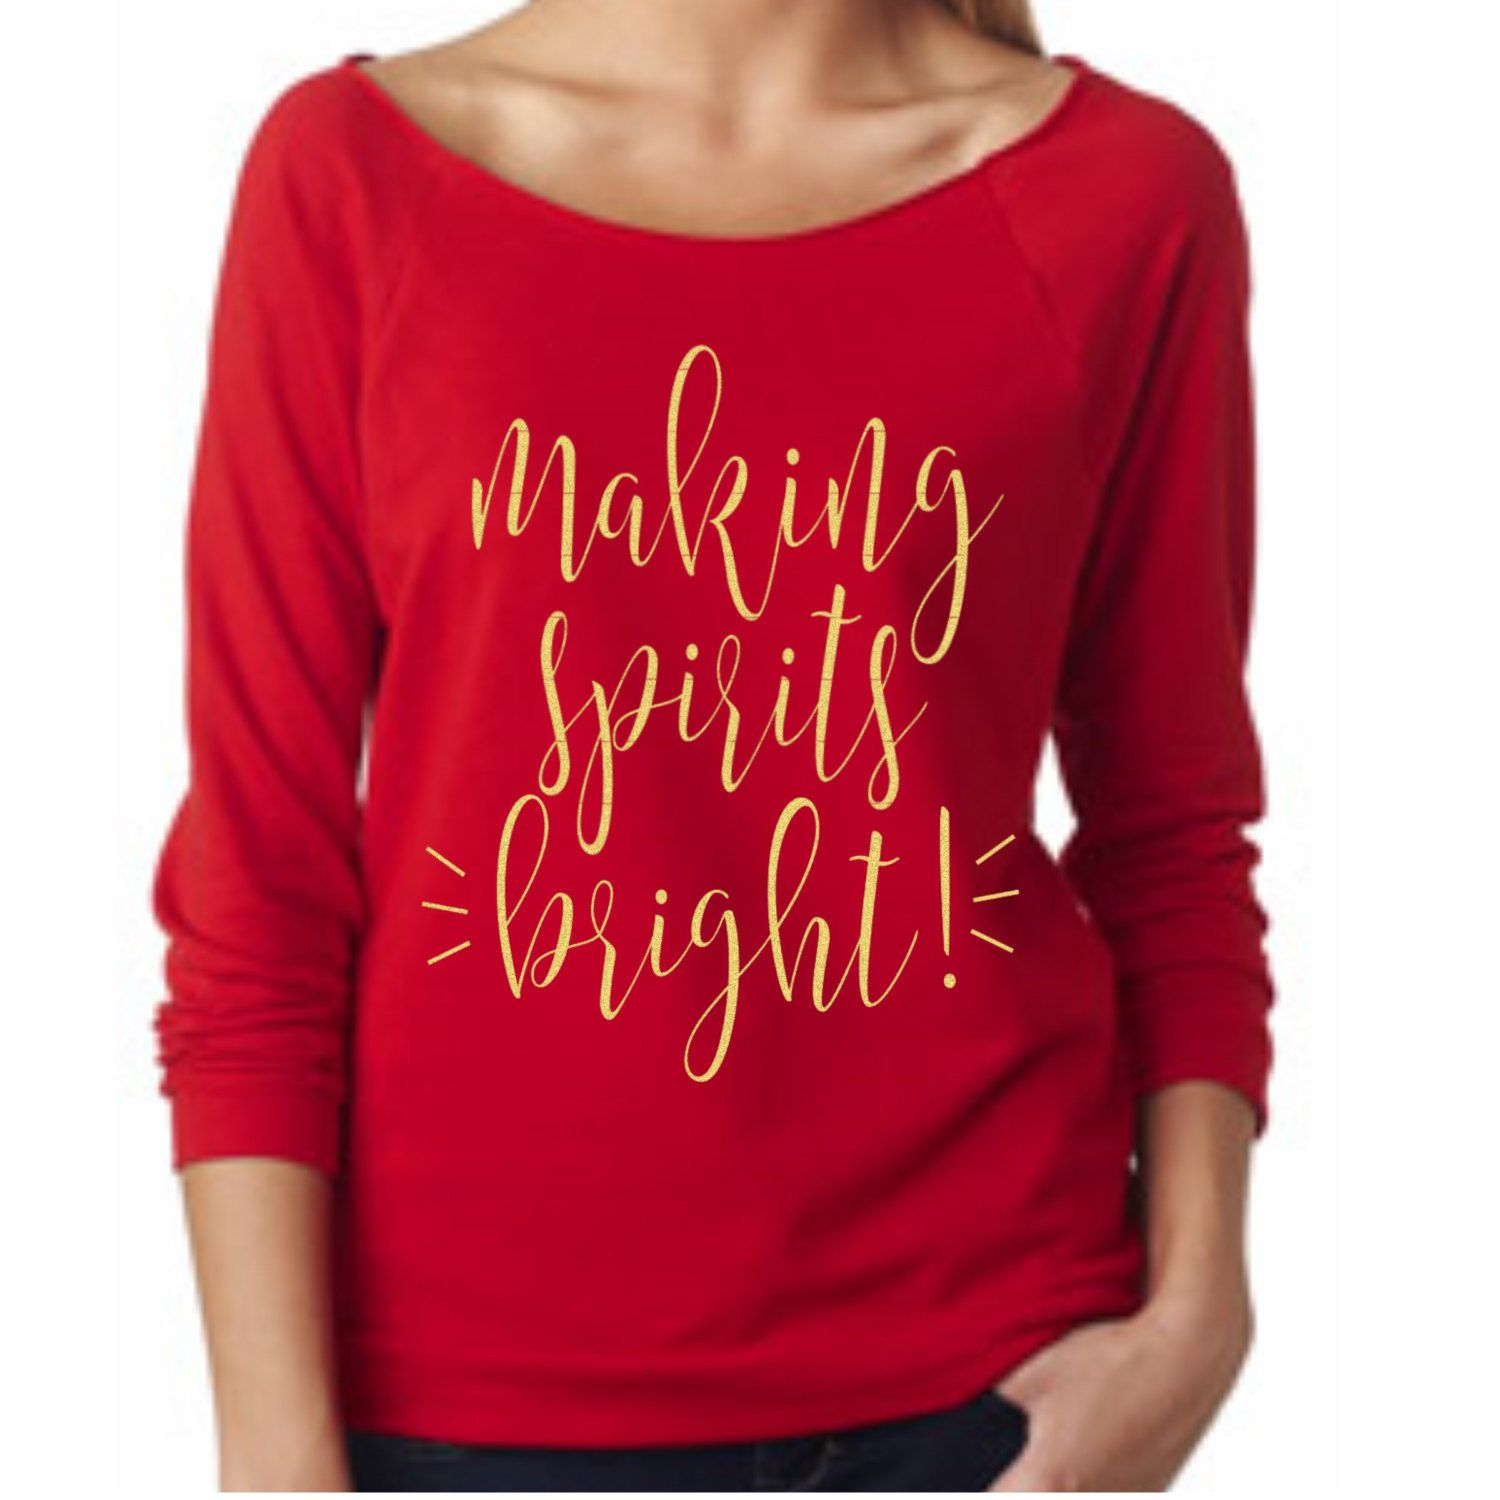 Making Spirits Bright 3/4 sleeve terry raw edge top, S-2XL, Holiday Top, Christmas Party Top, Merry Christmas, Holiday Sweatshirt by ShopatBash on Etsy